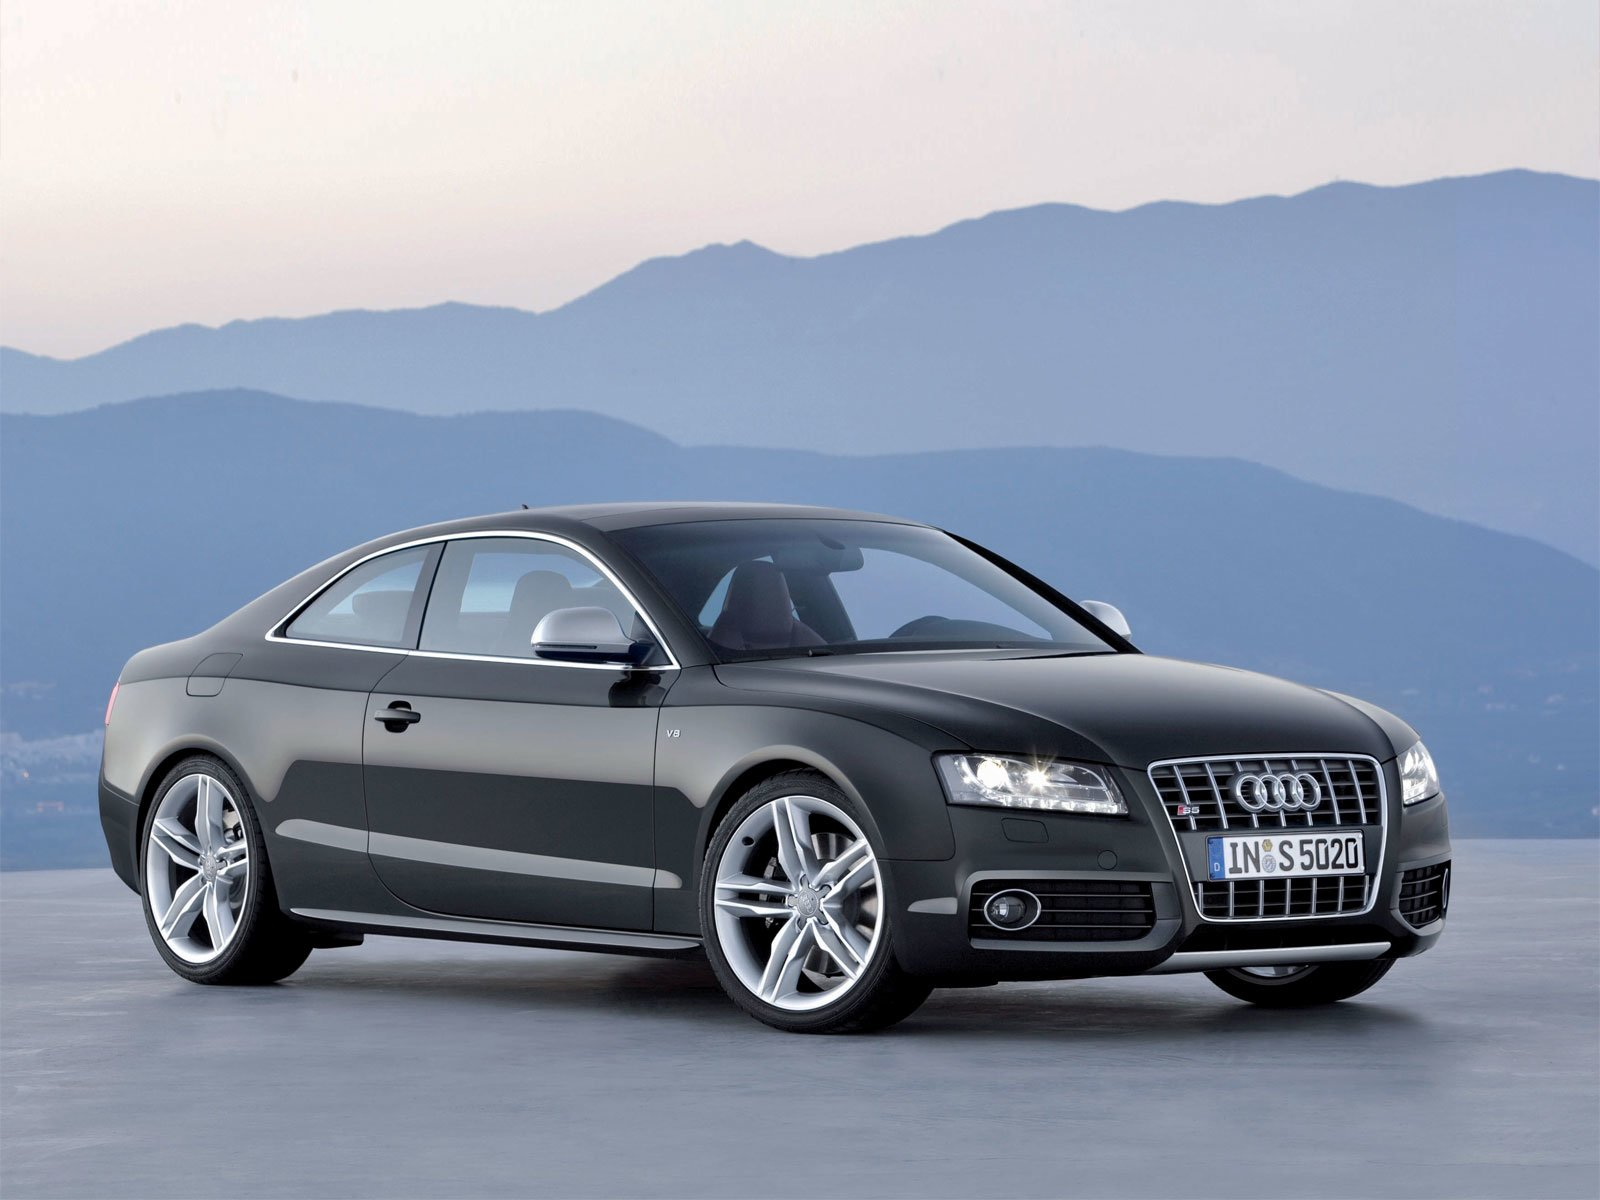 Latest Audi S5 Hd Wallpapers Hd Car Wallpapers Free Download